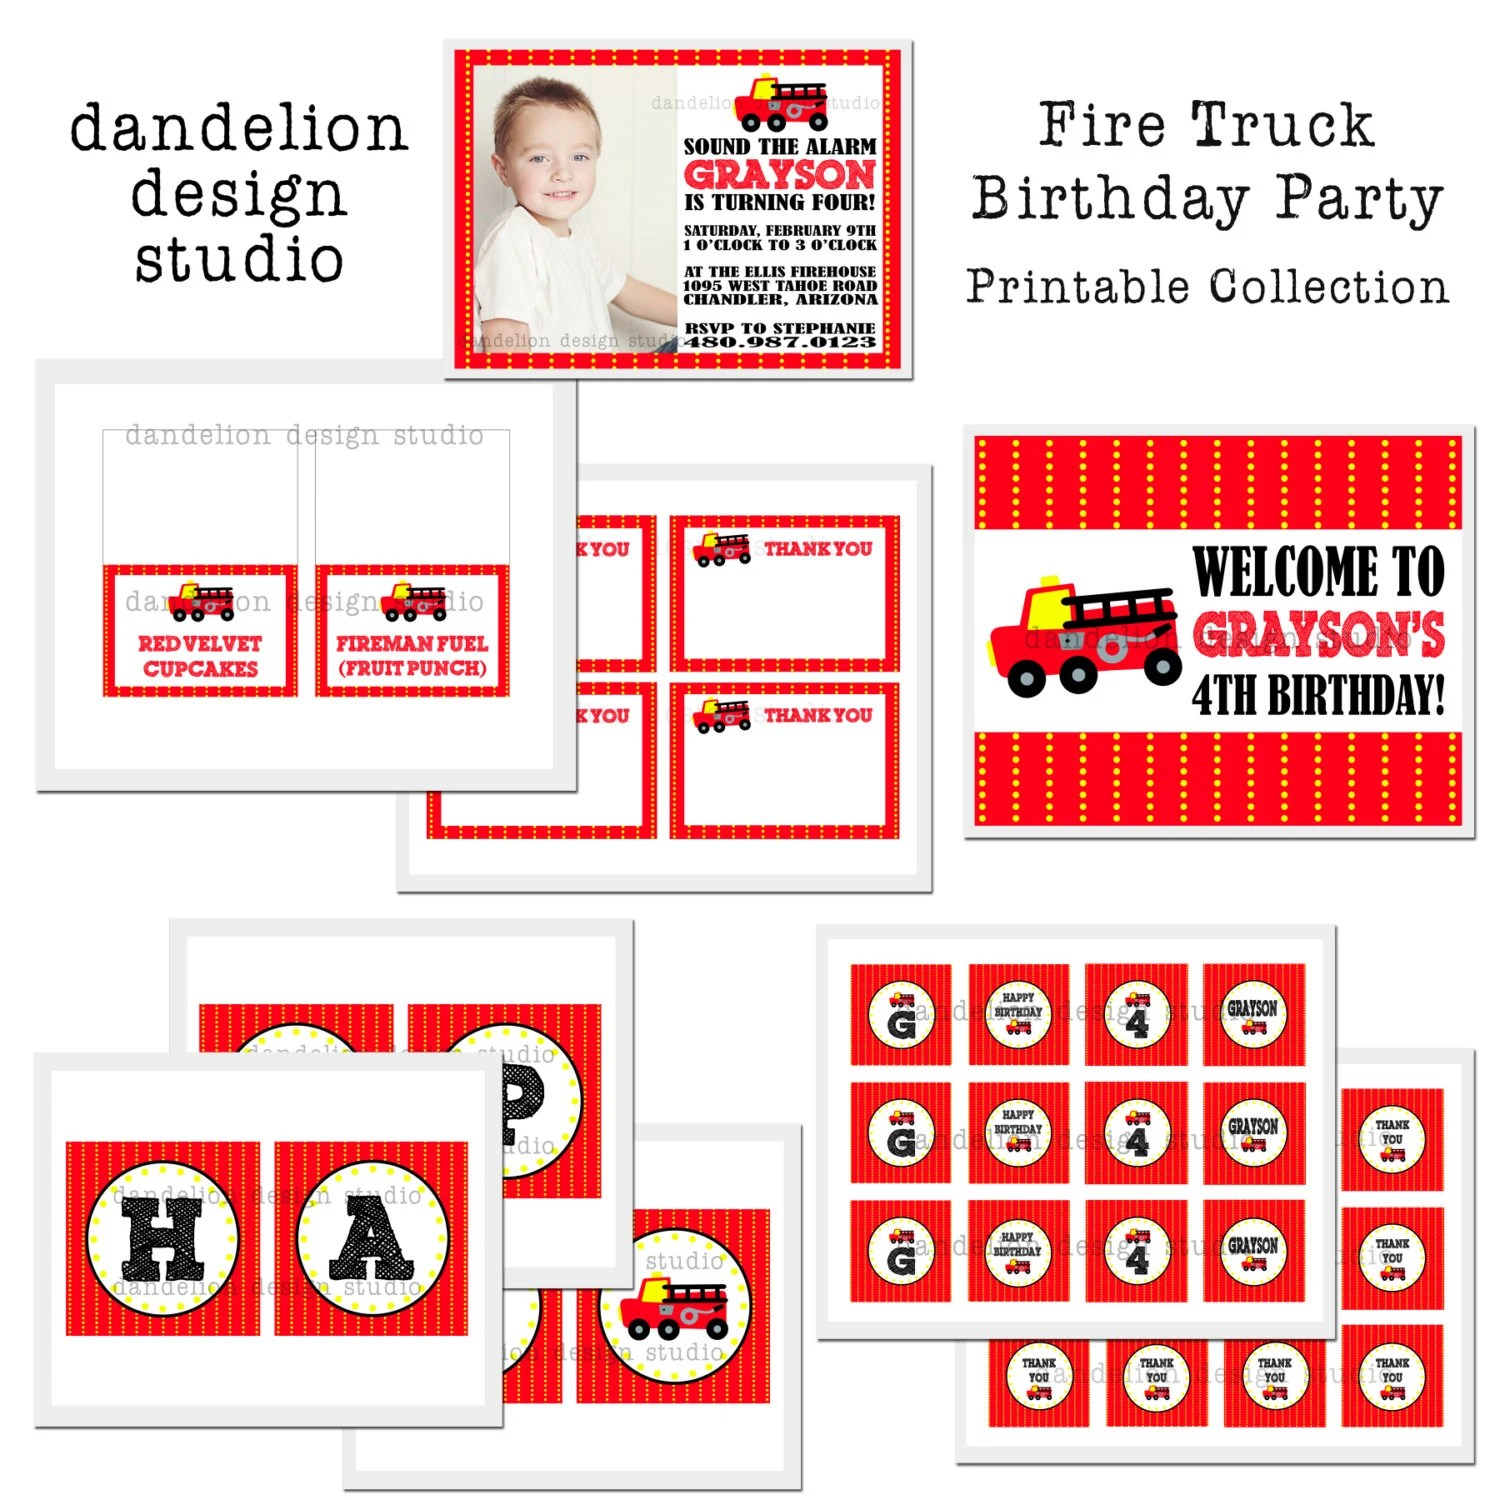 Printable Full Collection Fire Truck Party Collection